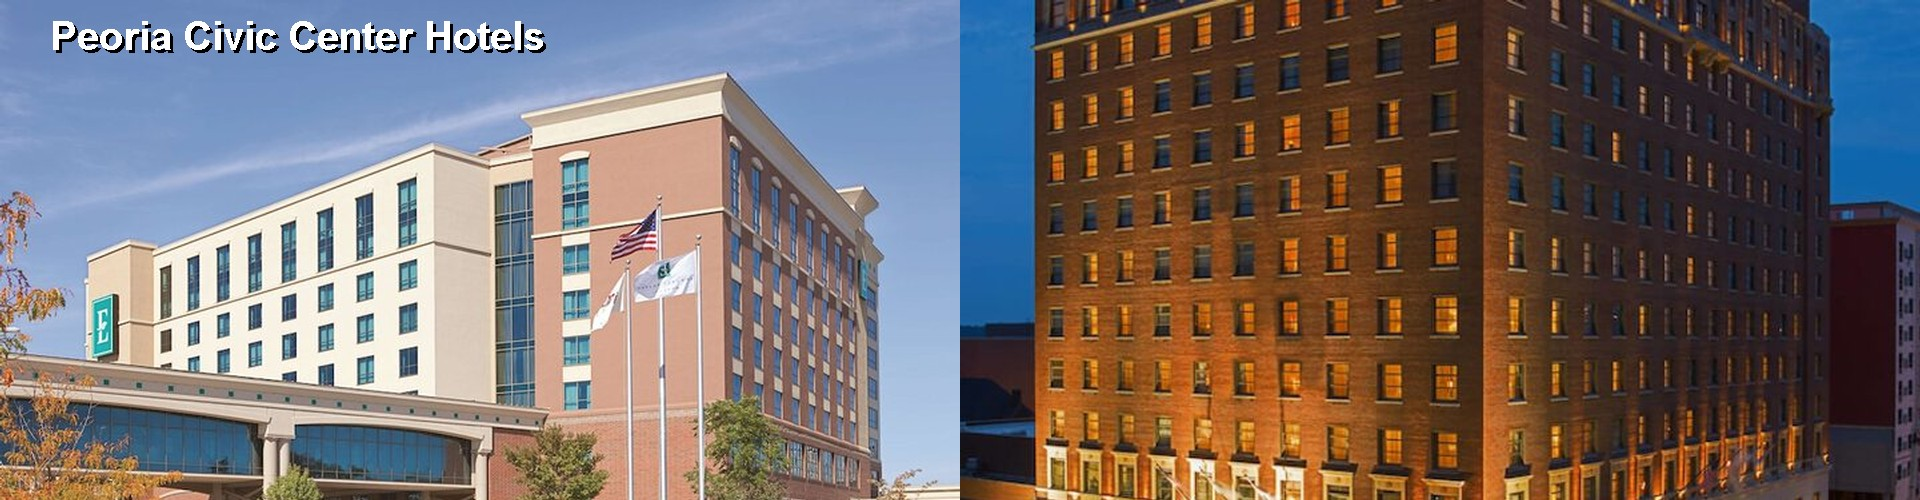 5 Best Hotels near Peoria Civic Center